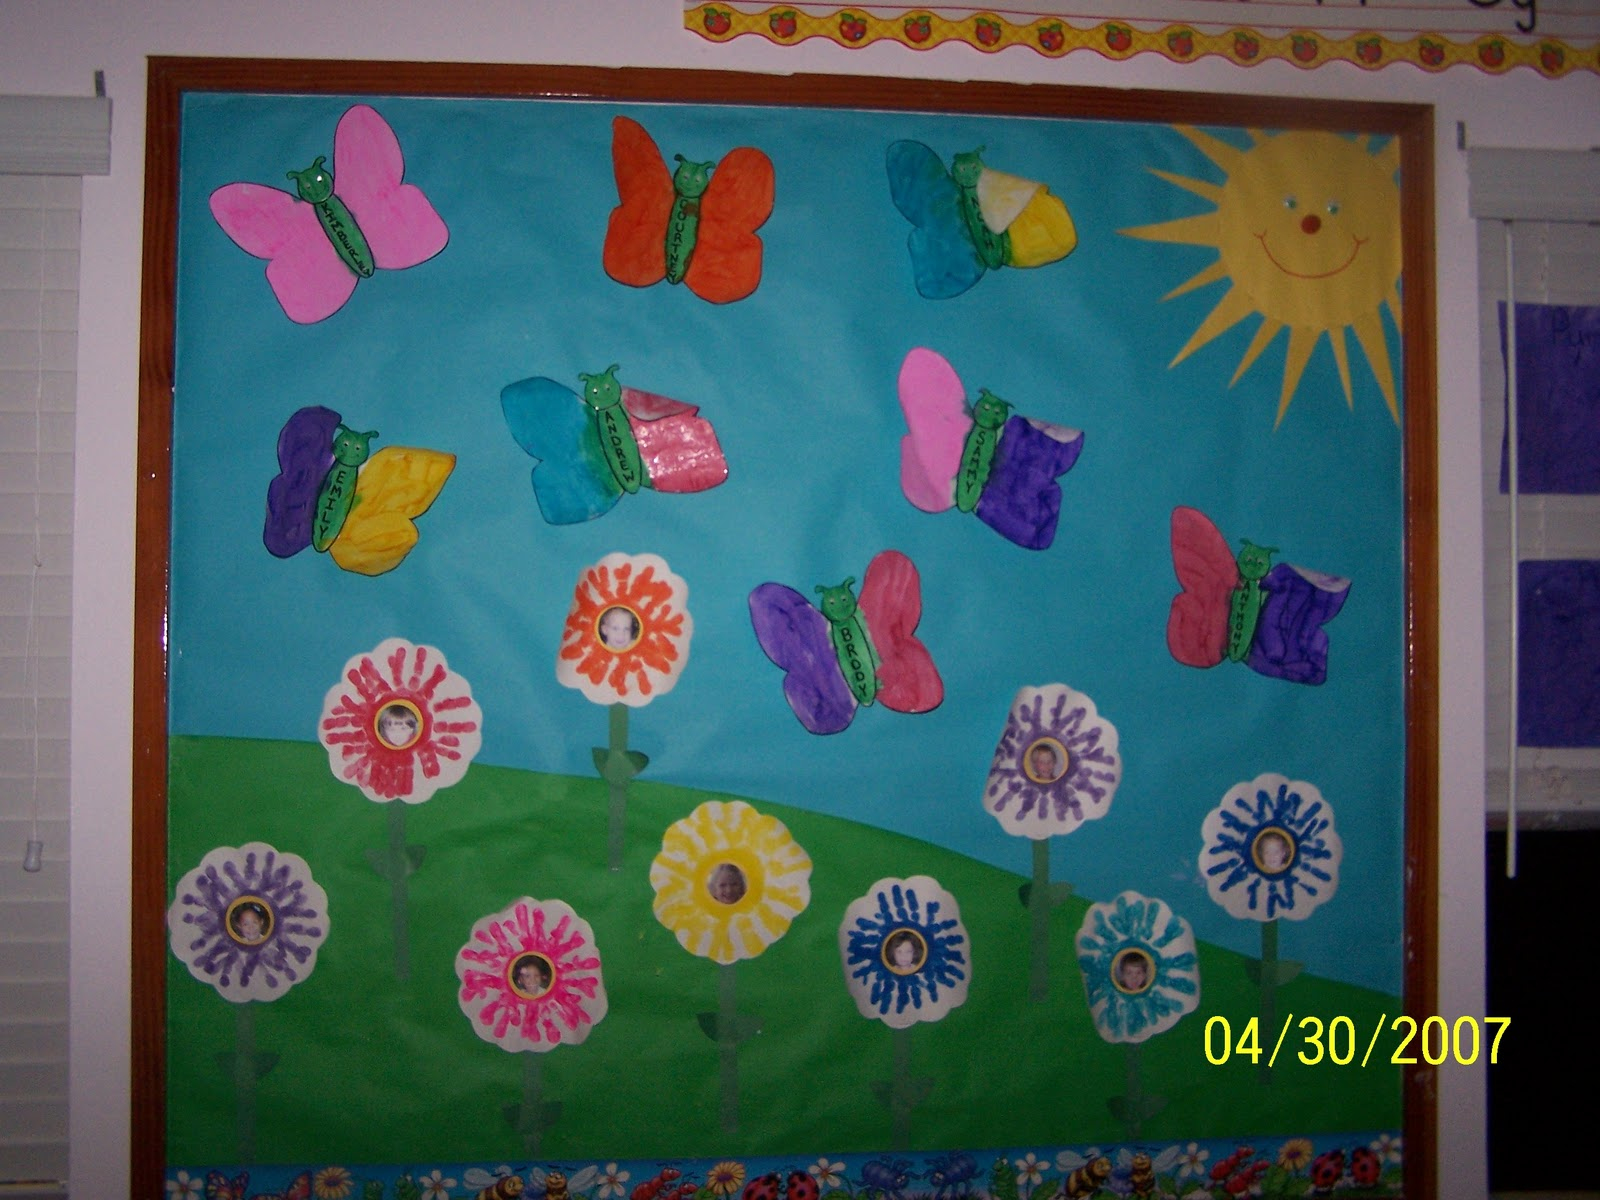 October Bulletin Board Ideas Preschool http://squishideasforpreschool.blogspot.com/2011_10_01_archive.html